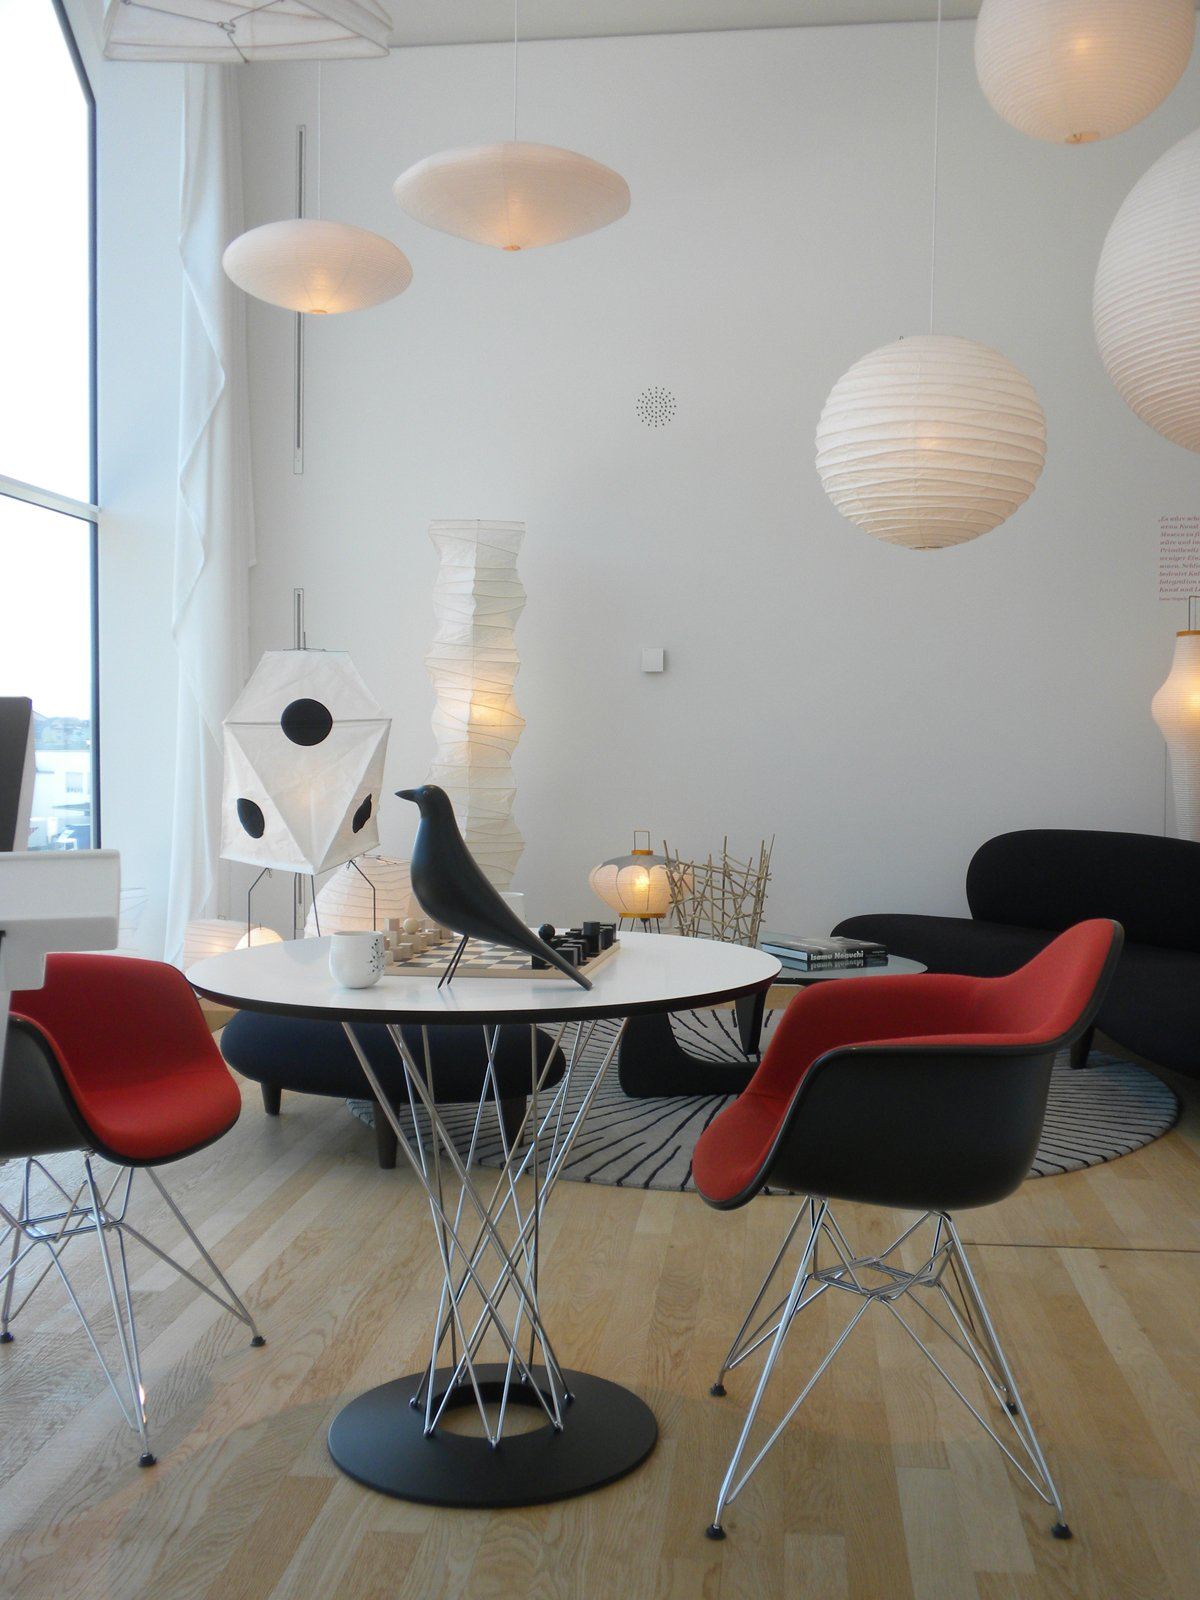 This living room setting is devoted to Isamu Noguchi, with a hit of Eames in the DAR Eames Plastic Armchairs and Eames House Bird atop the Noguchi Dining Table. In the background are the Freeform Sofa and Ottoman, Noguchi Table, and assorted Akari lamps by the designer.  Inside the VitraHaus by Miyoko Ohtake